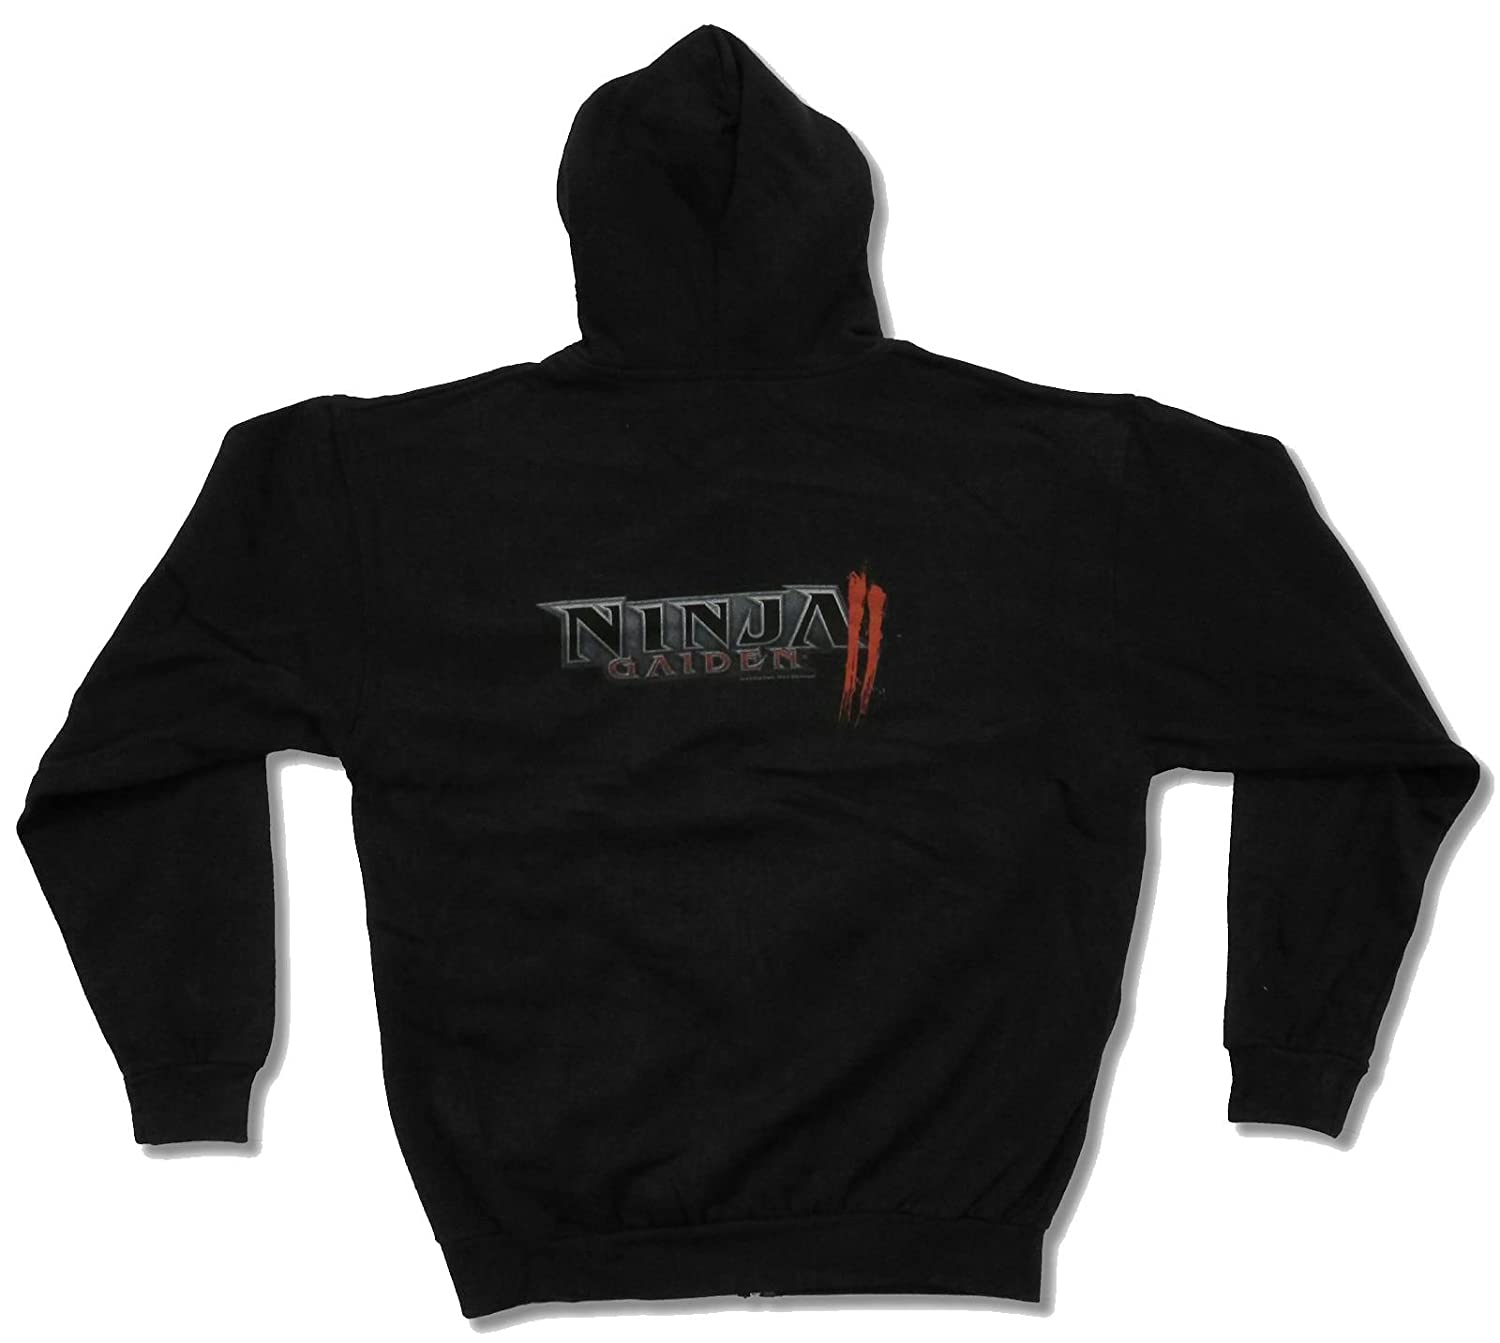 Ninja Gaiden II Logo Black Zip Hoodie Sweatshirt (Medium) at ...